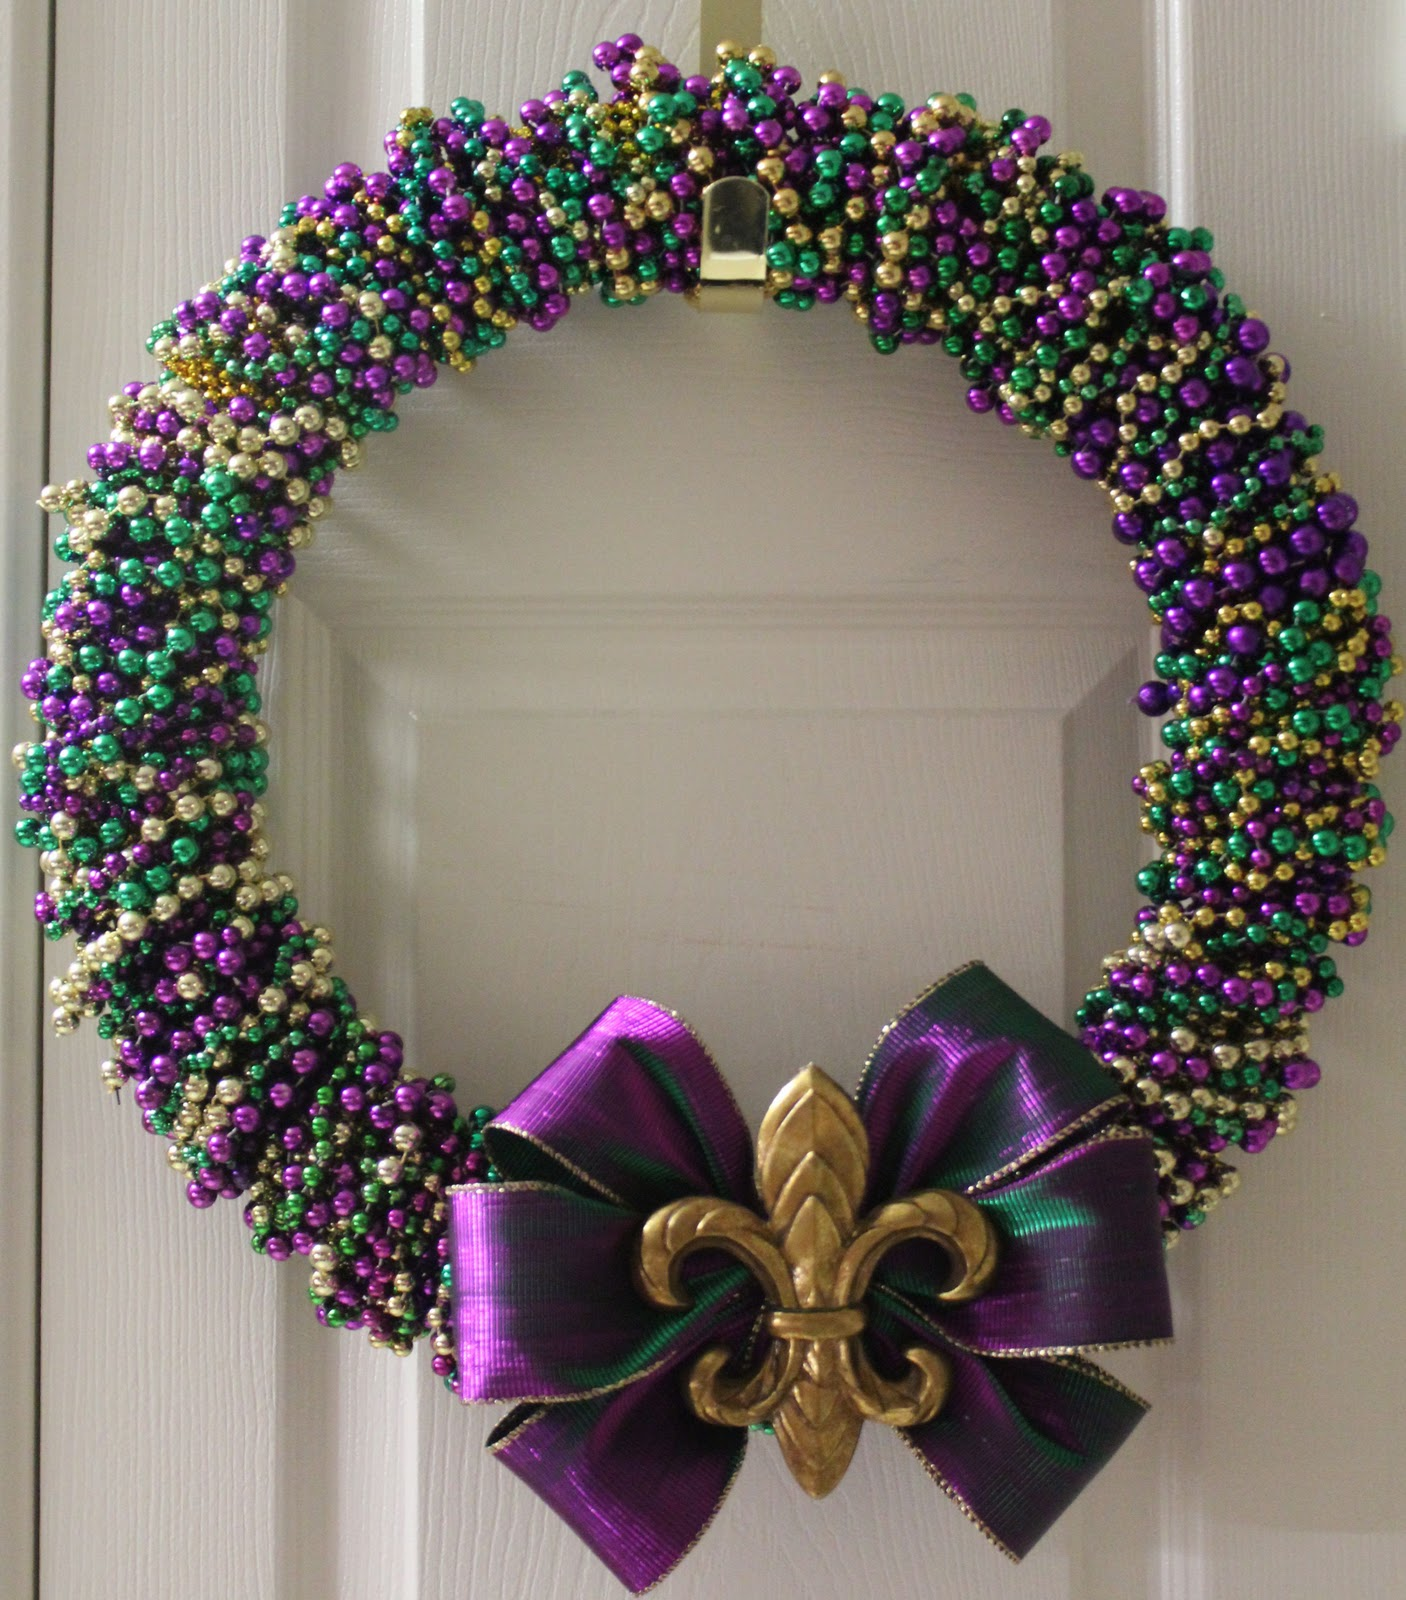 sew in love mardi gras bead wreath tutorial